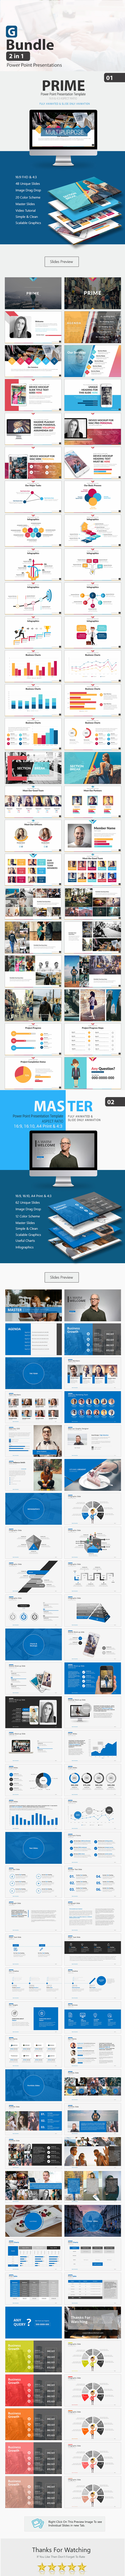 G Bundle 2 in 1 Power Point Presentation - Business PowerPoint Templates